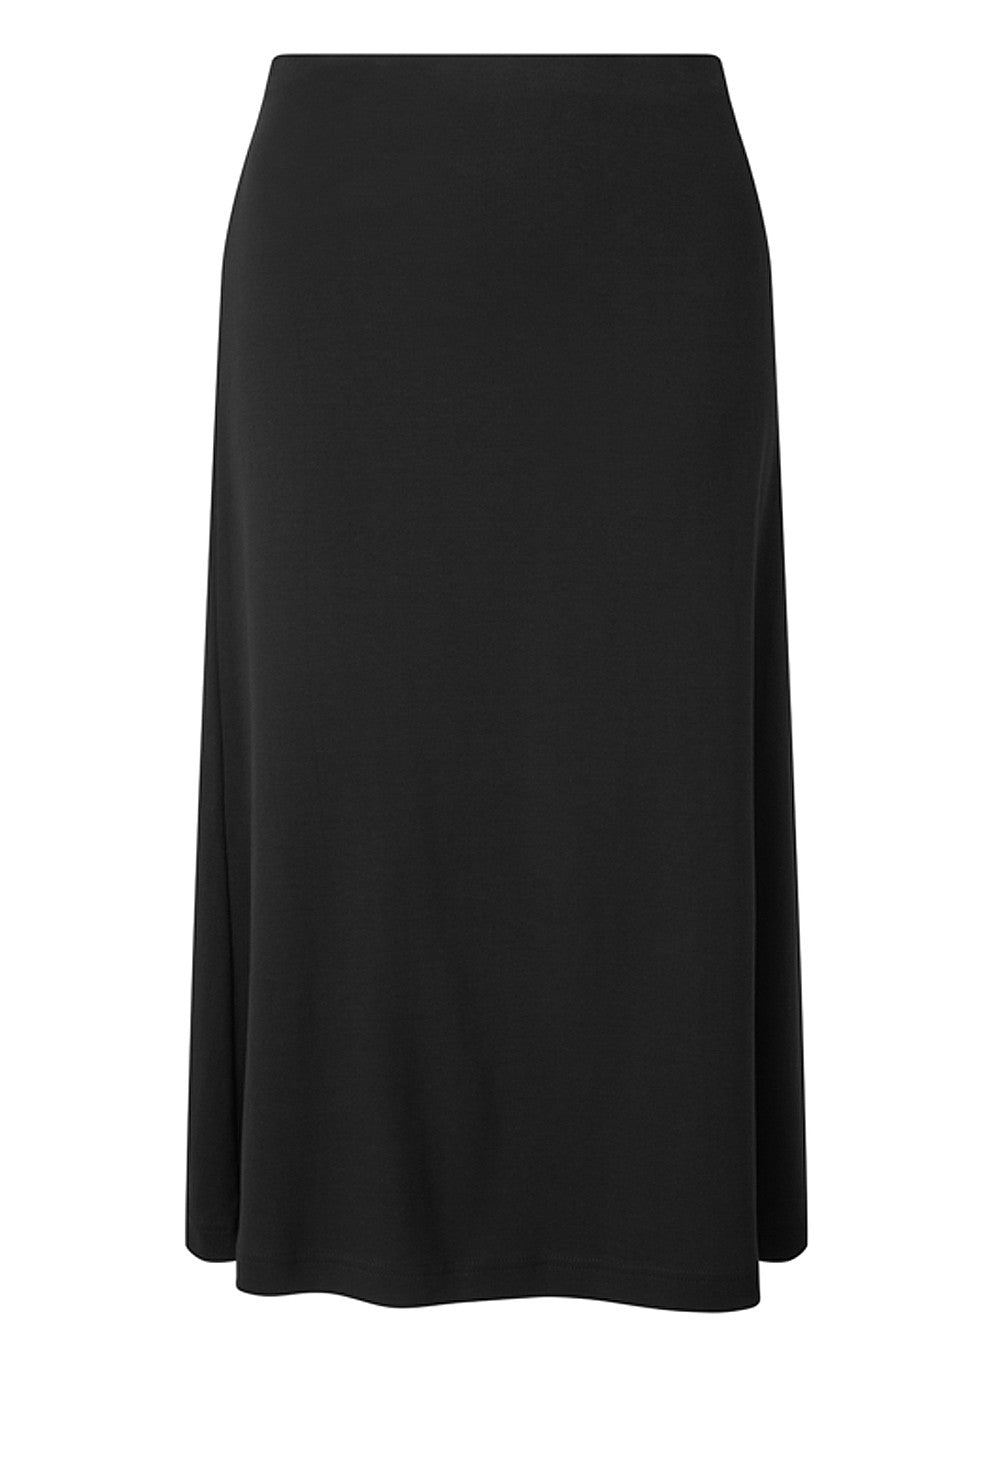 Fiona Skirt in Black